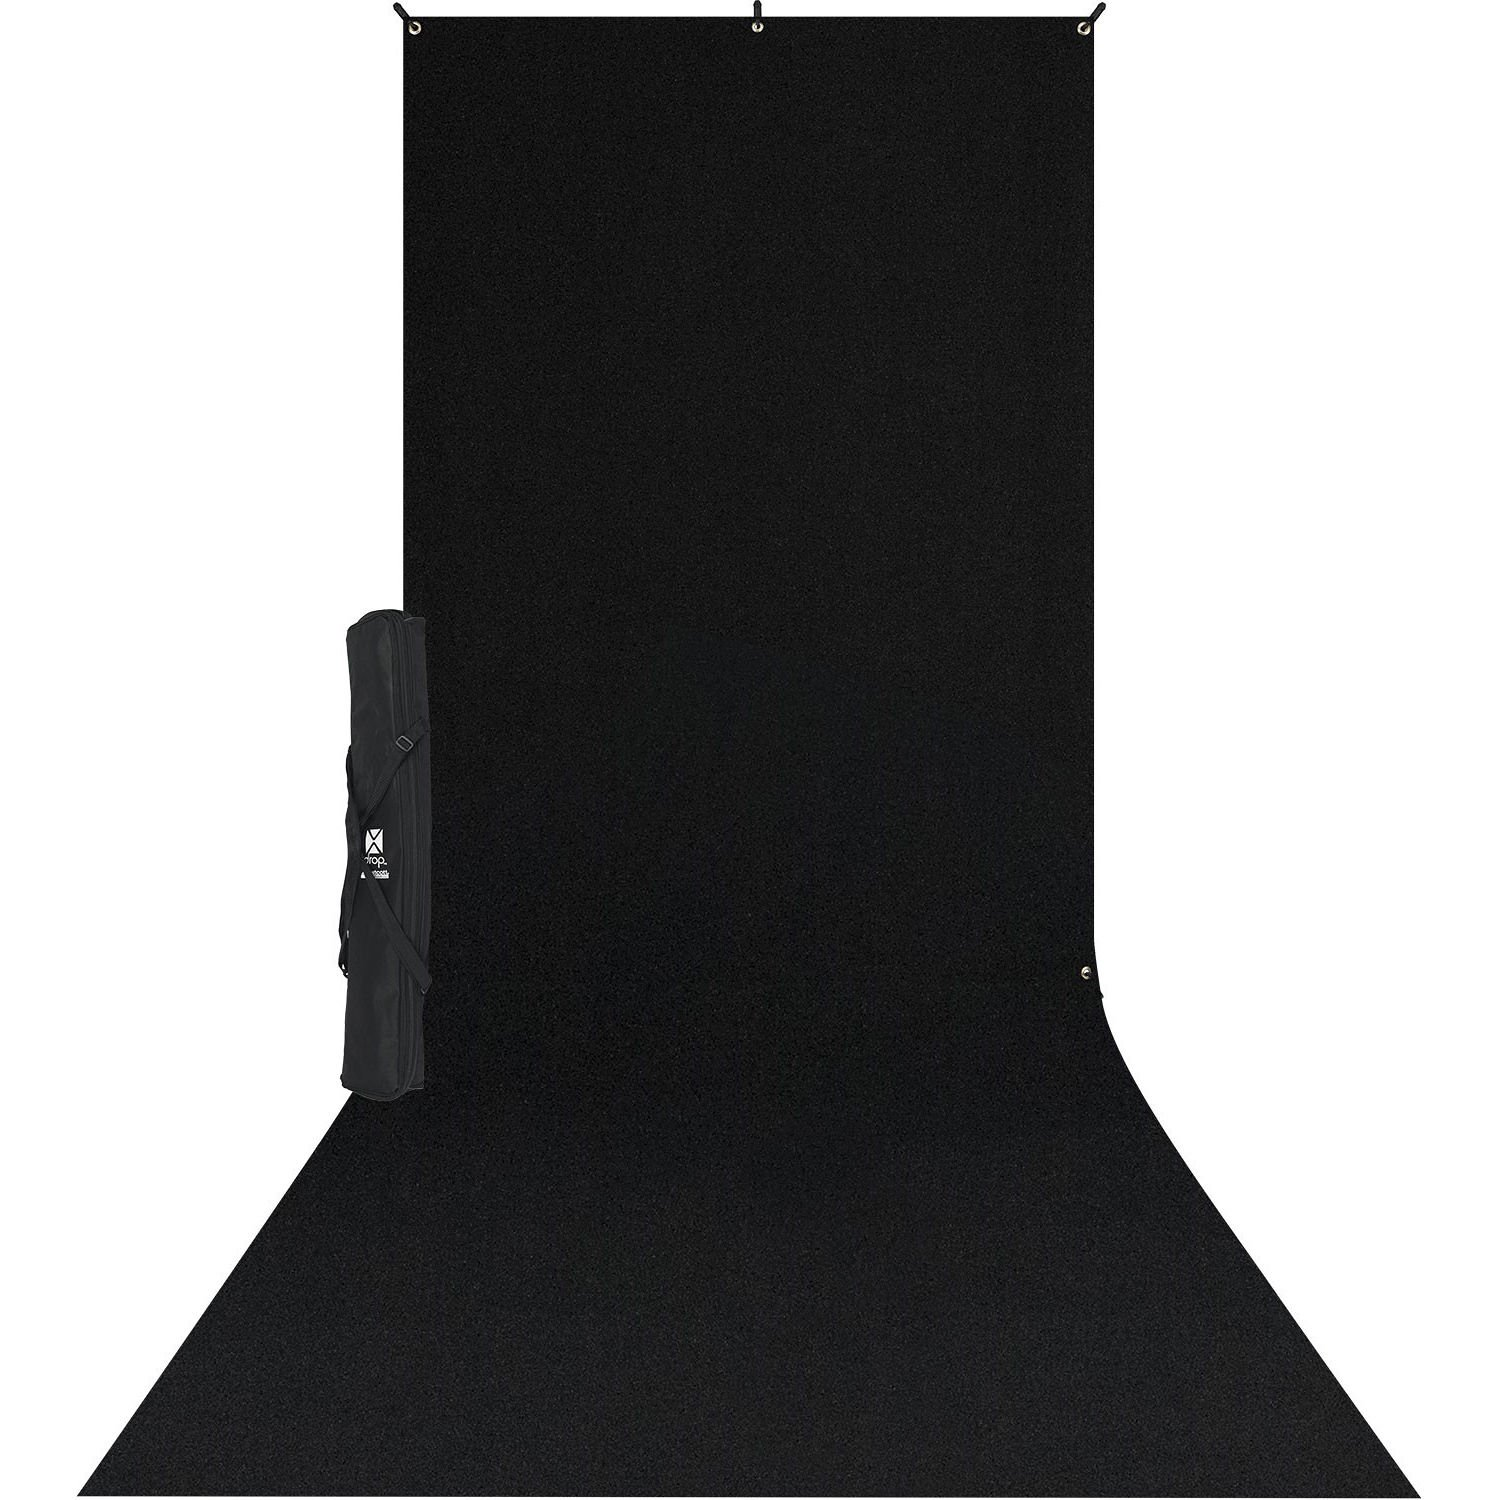 Westcott 578SK X-Drop Wrinkle-Resistant Backdrop Kit - Rich Black Sweep (5' x 12') by Westcott